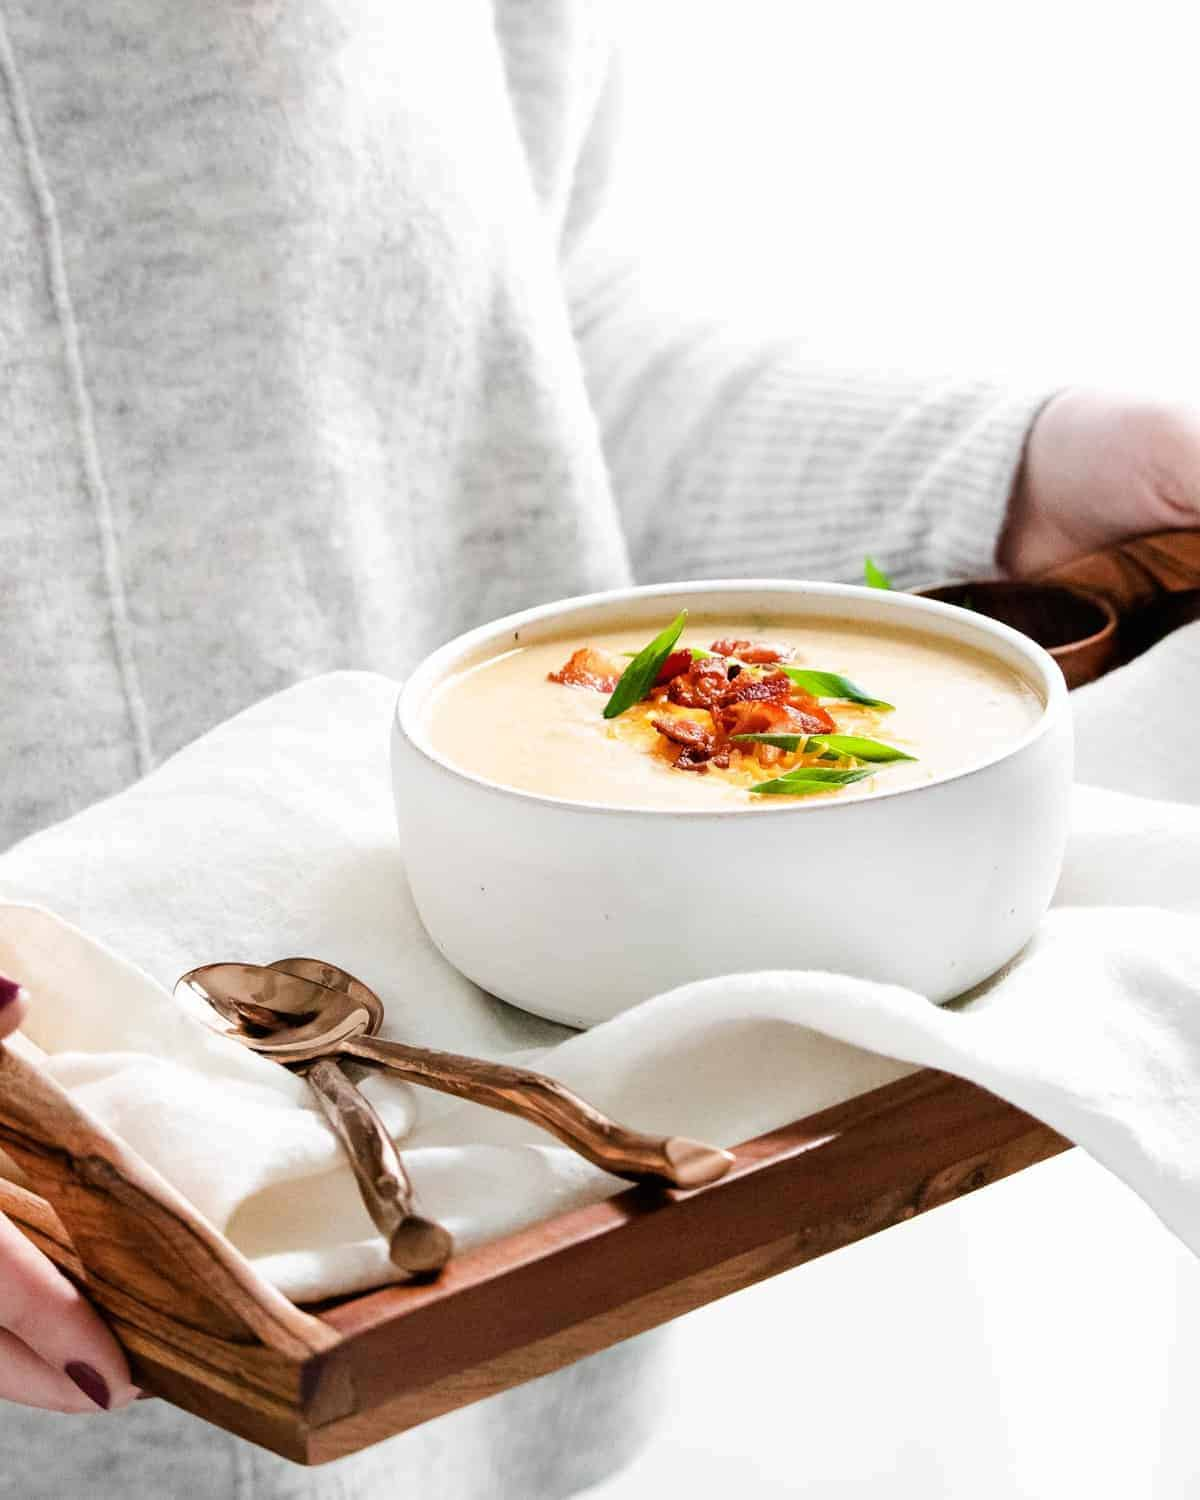 Soup on a tray with spoons.